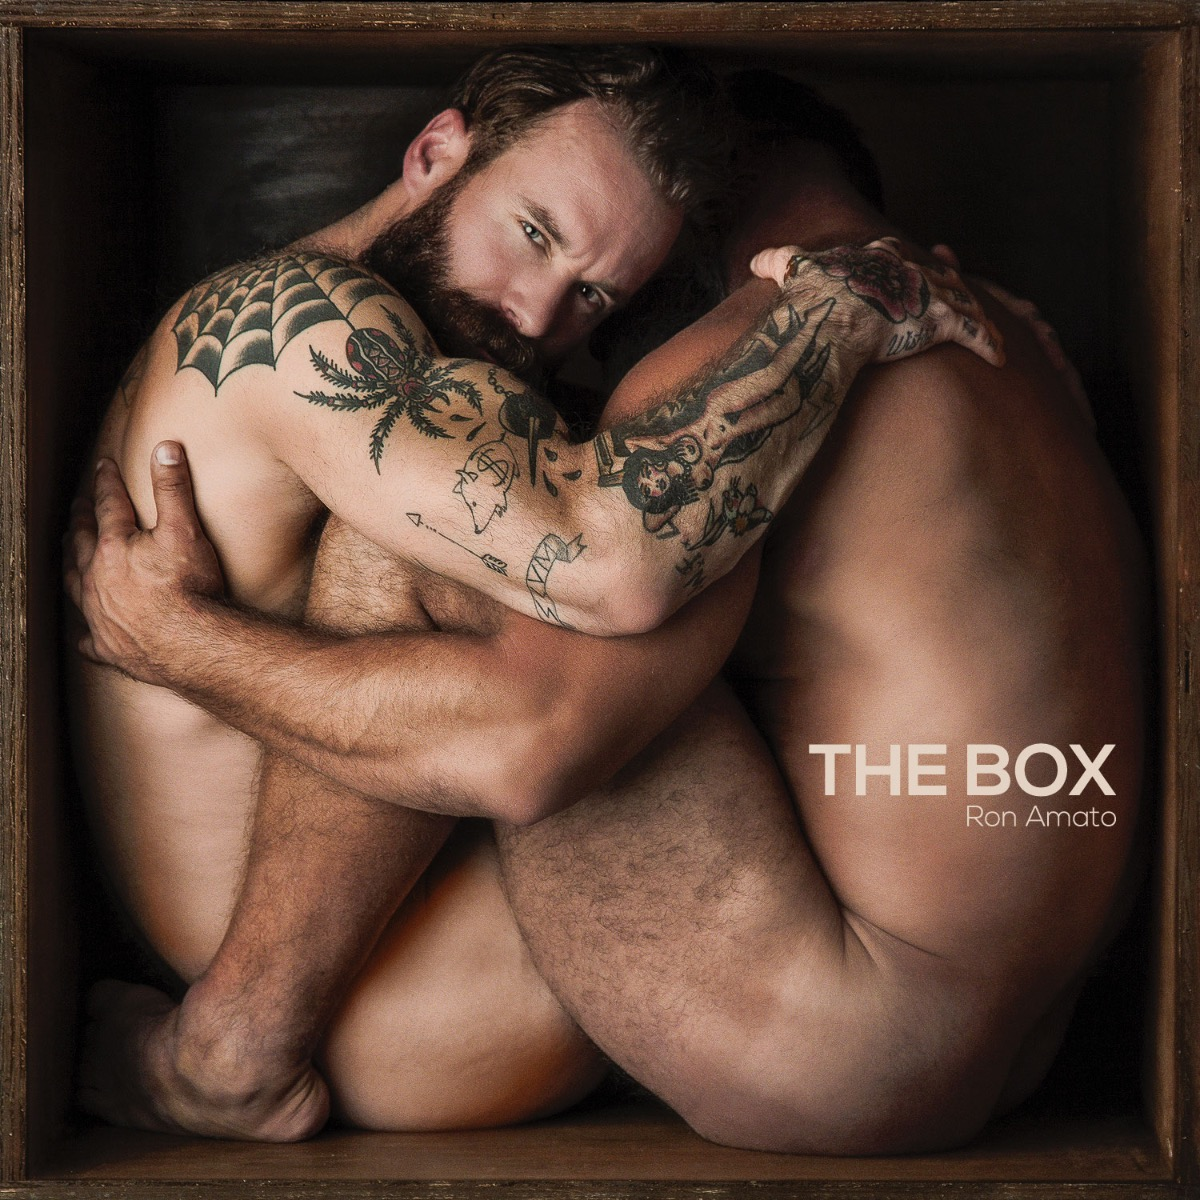 The Box by Ron Amato